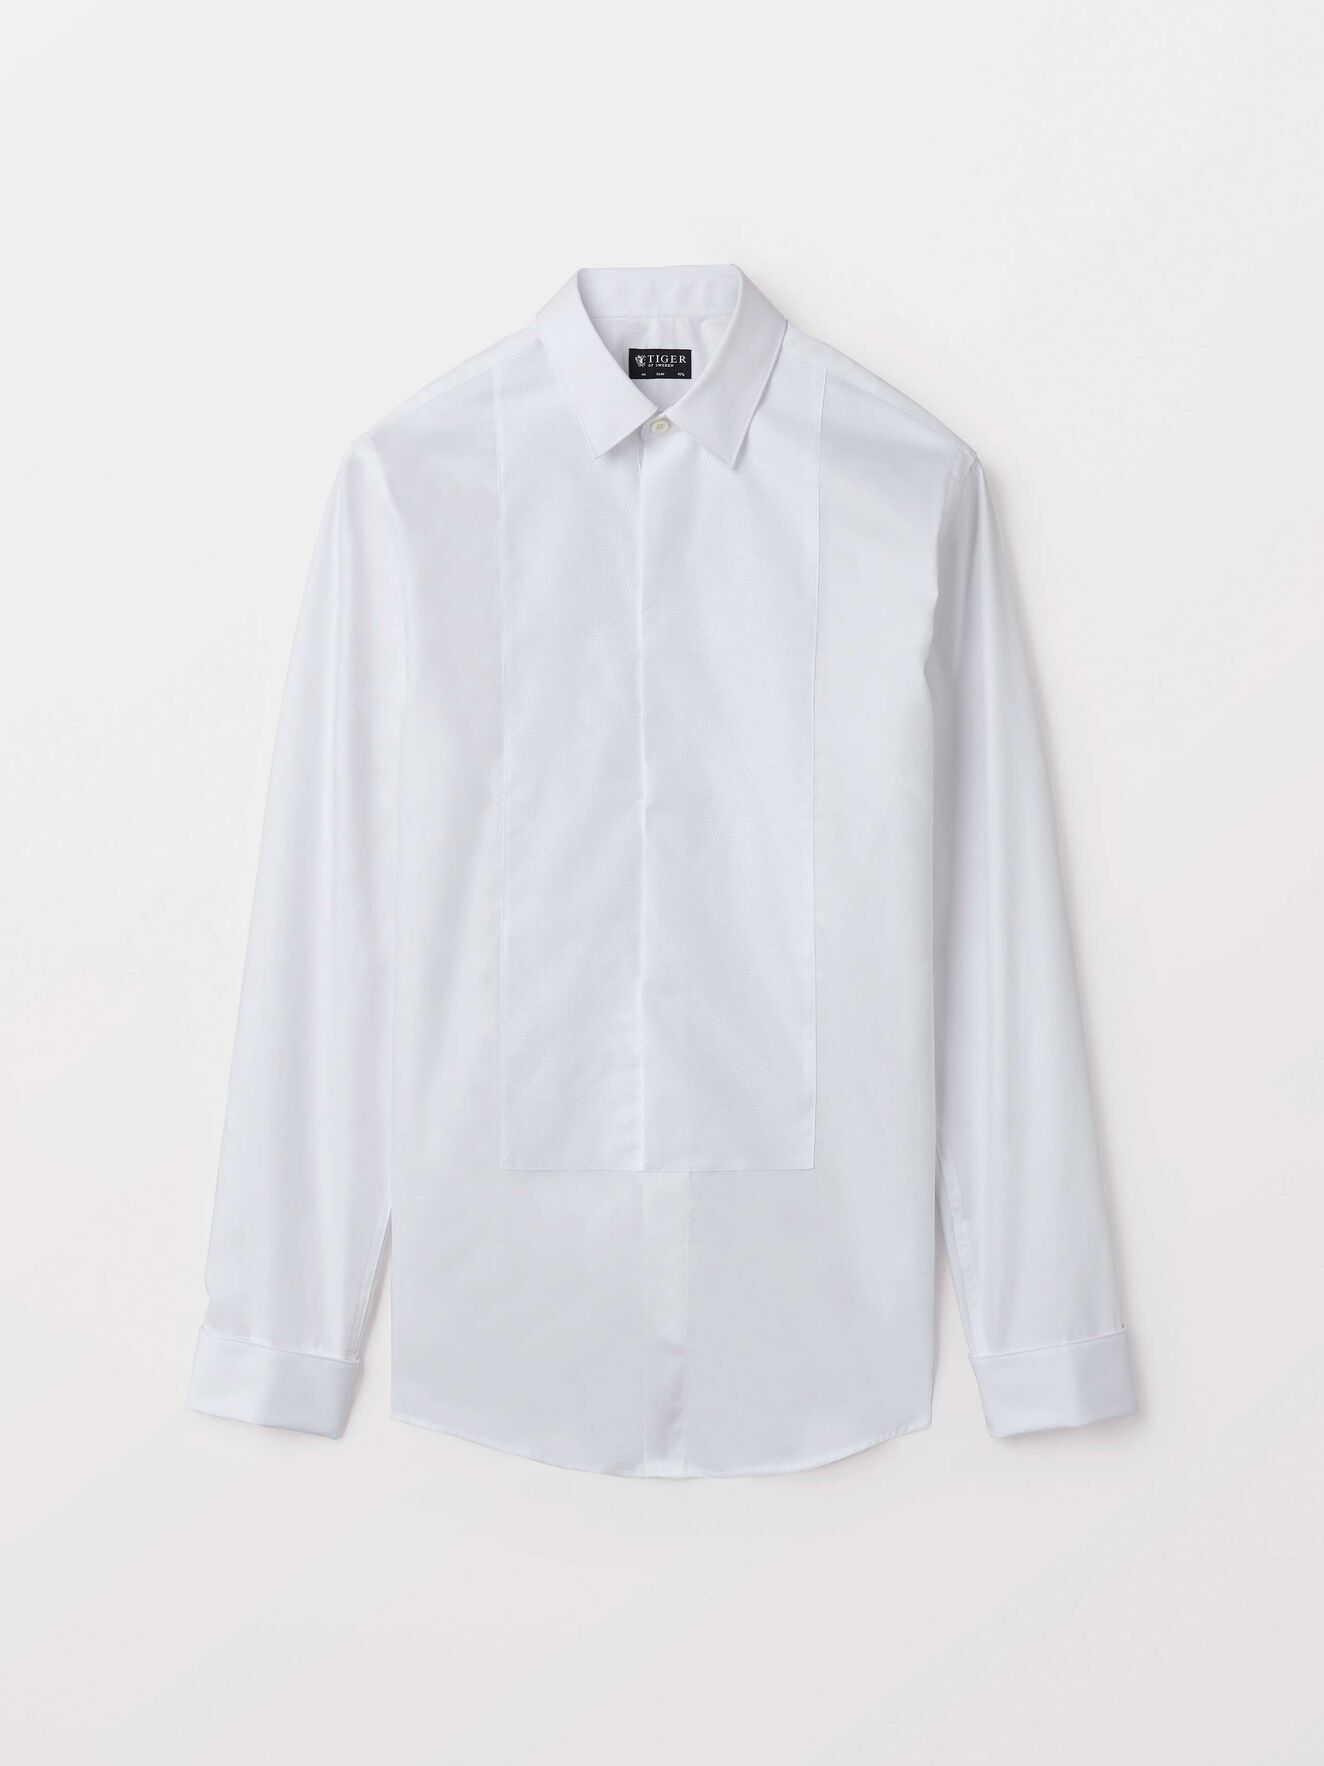 Farran Shirt in Pure white from Tiger of Sweden